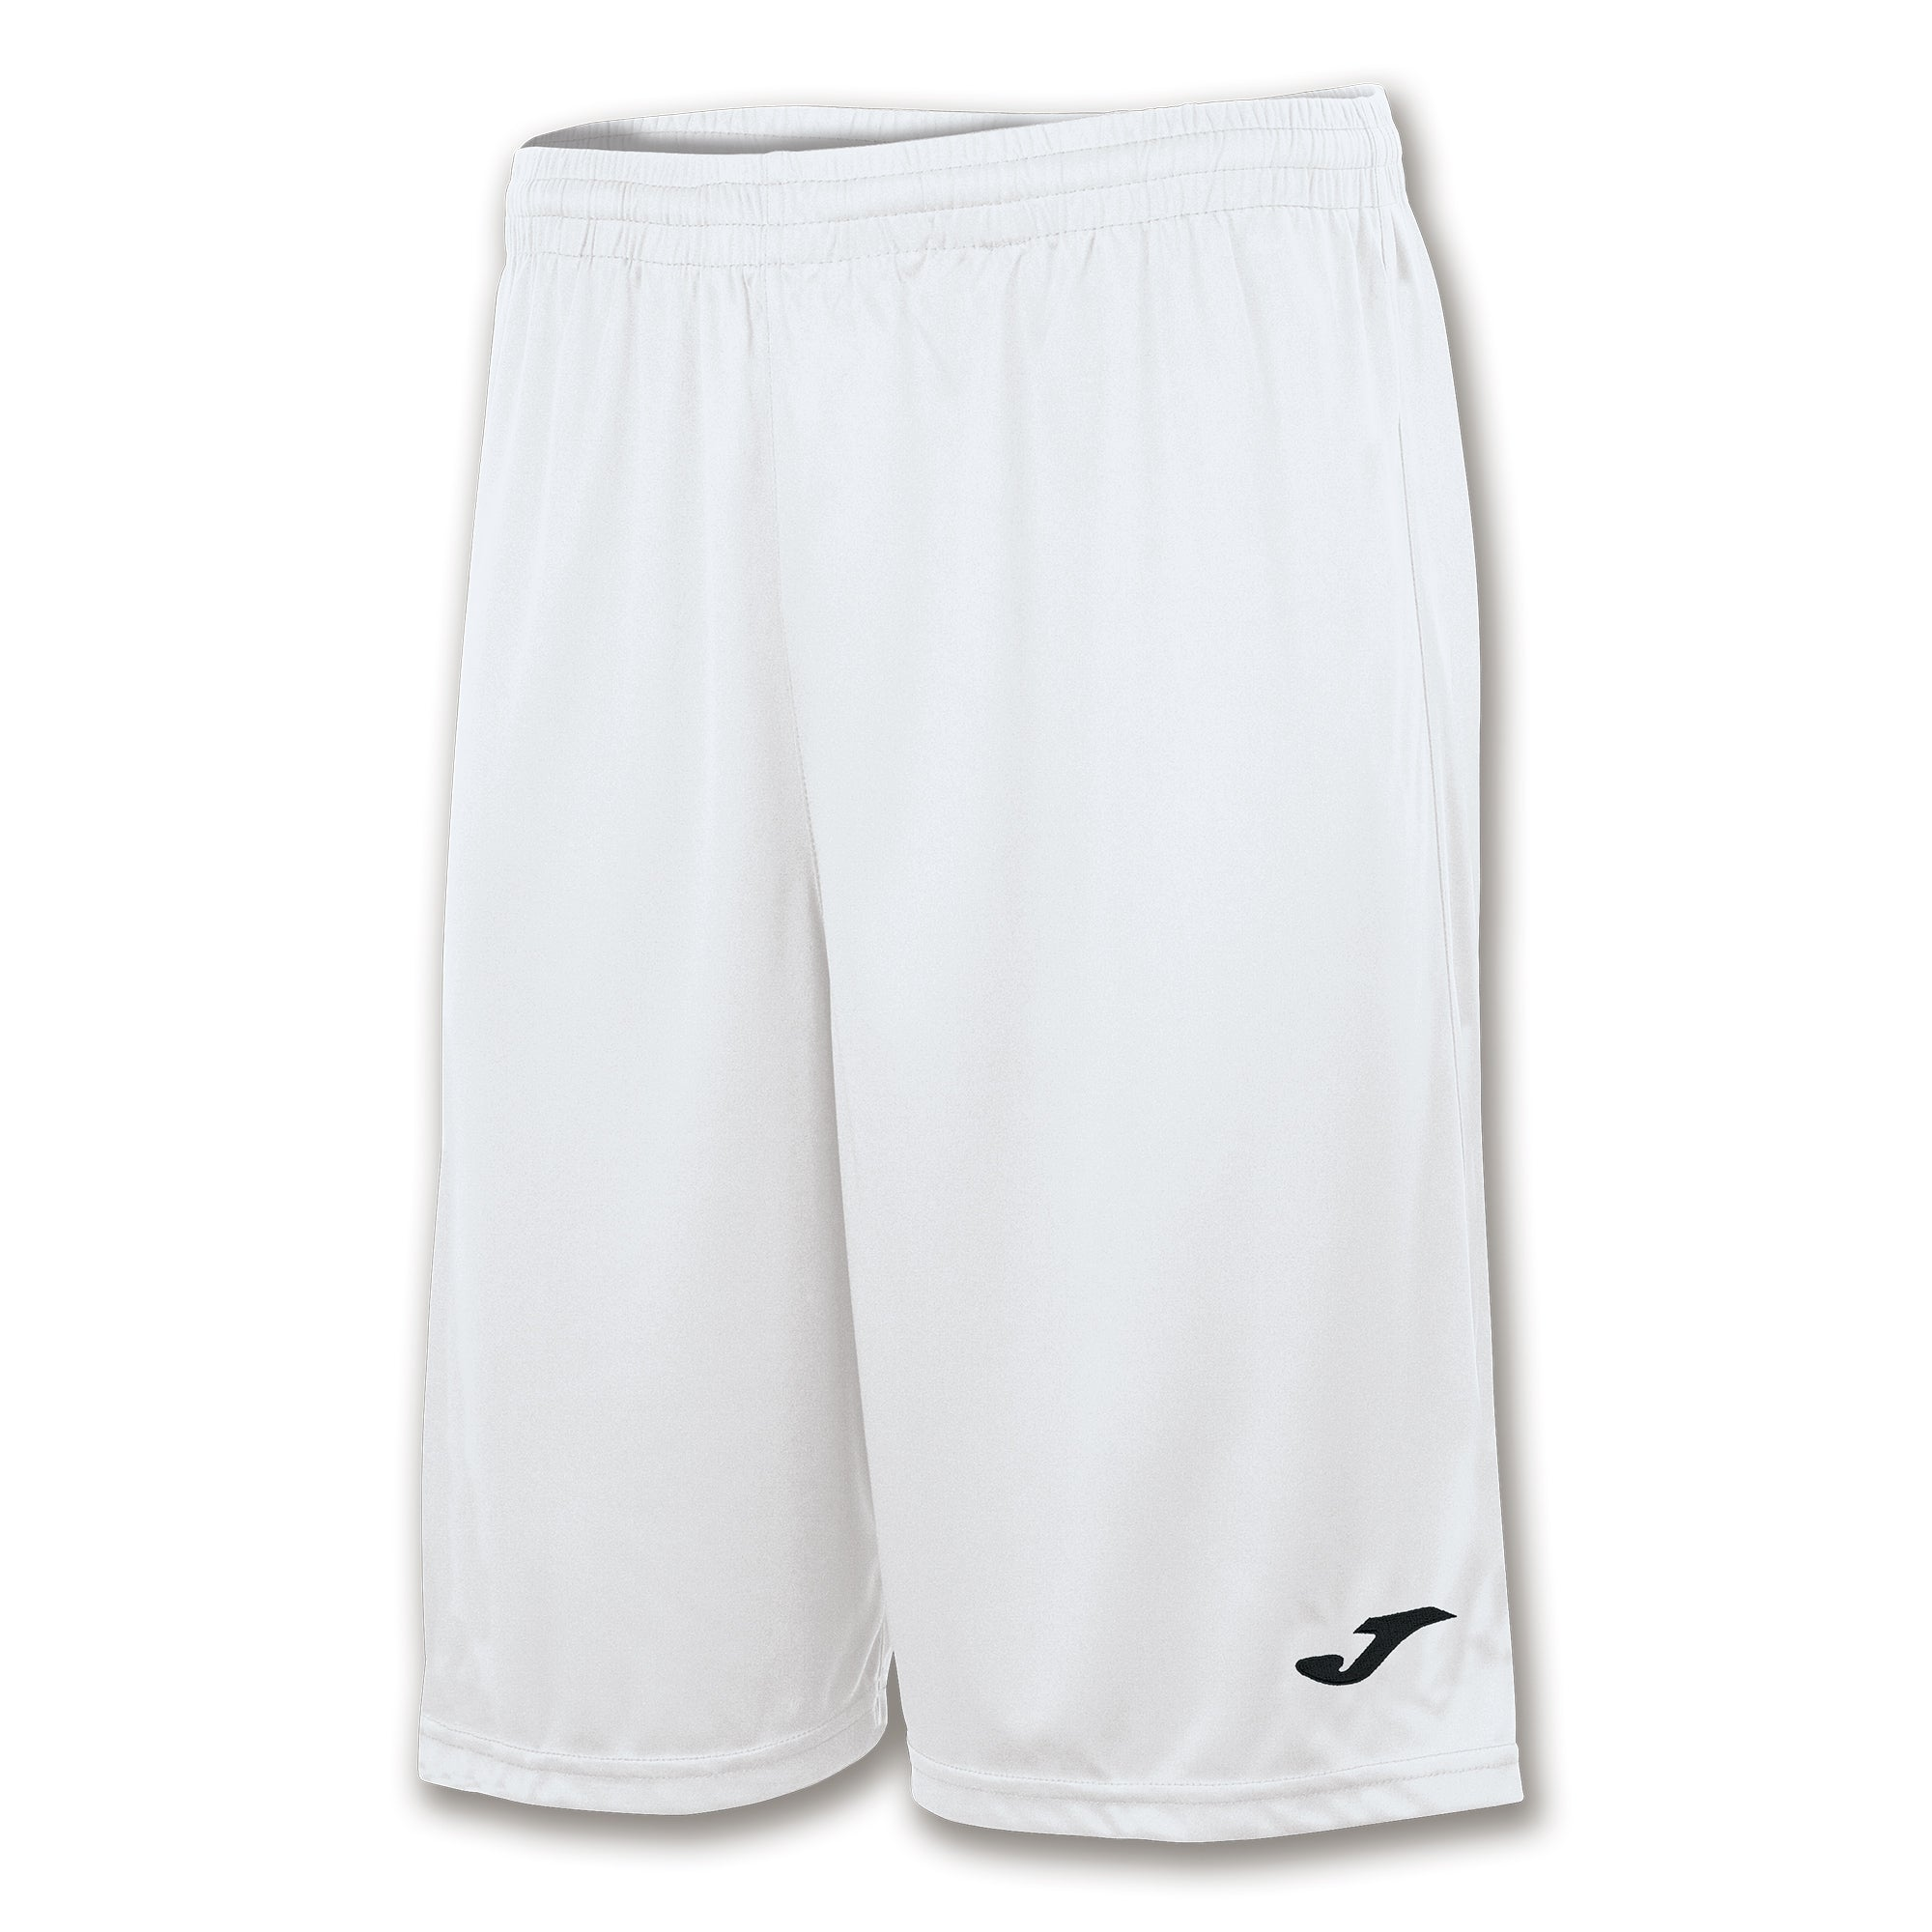 Teamwear - Joma Nobel Long Shorts - White - JO-101648-200